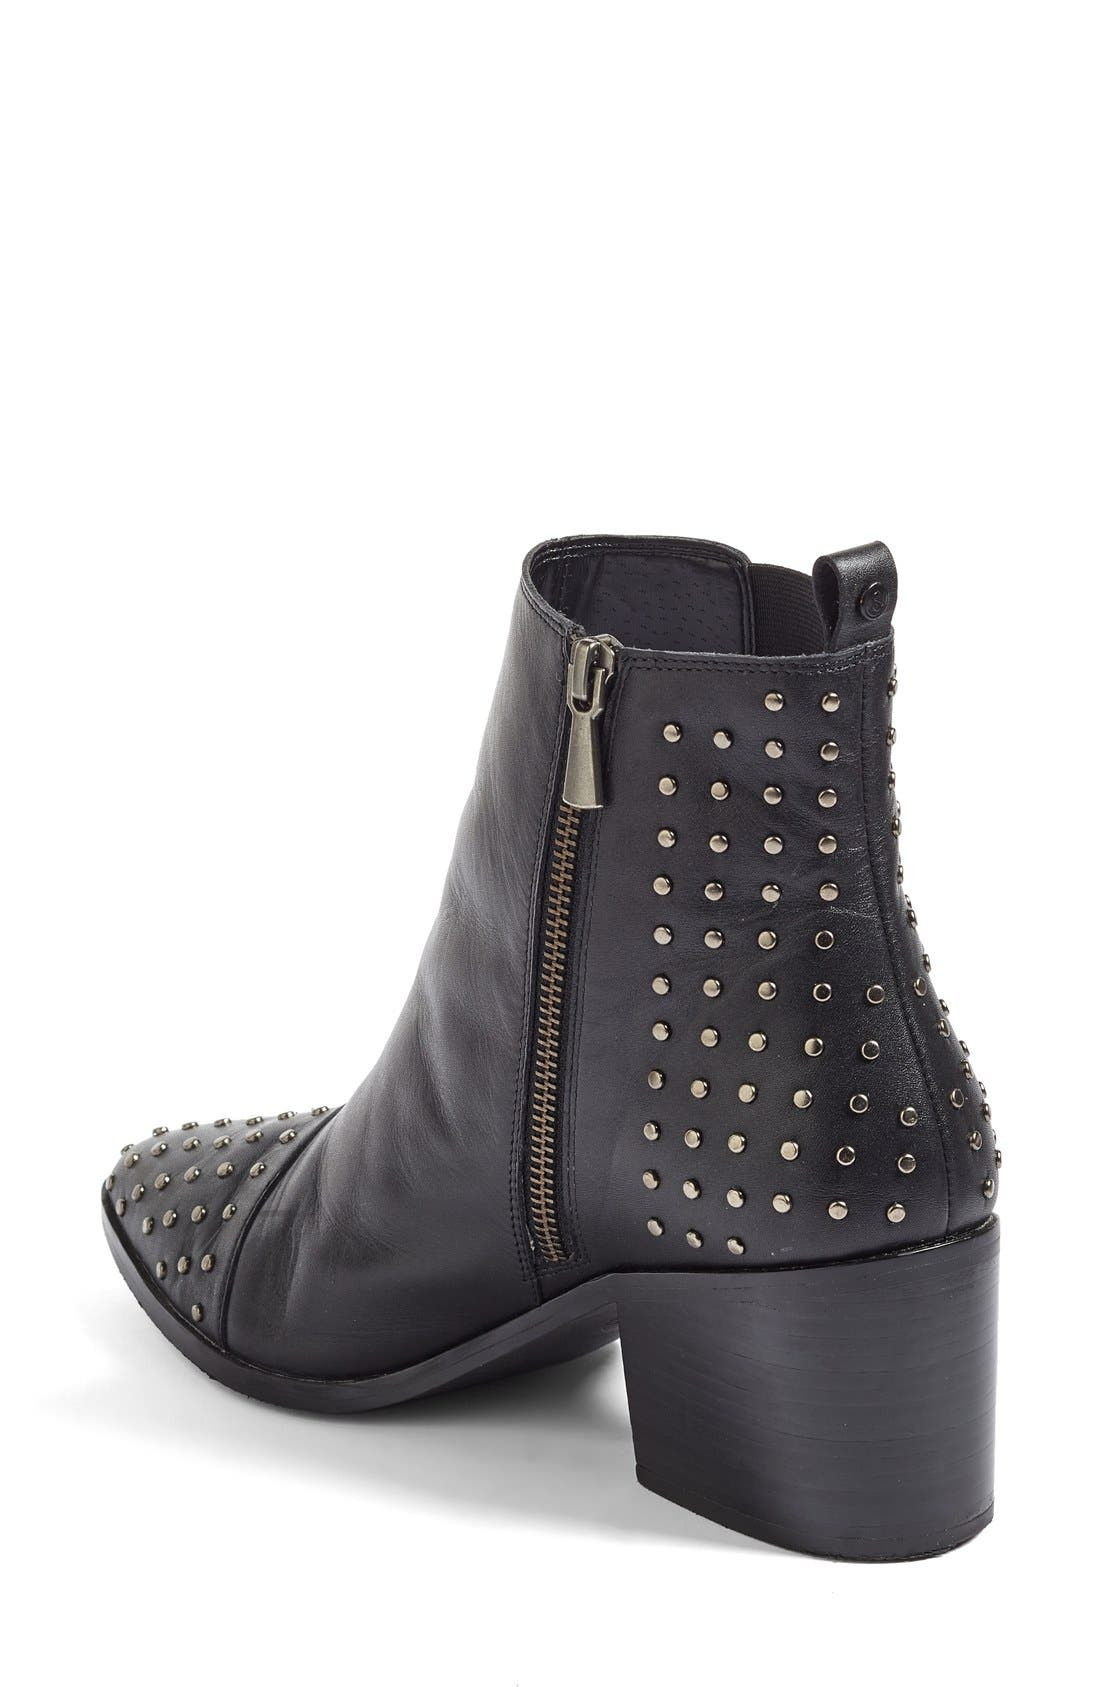 Treasure&Bond Harlan Studded Chelsea Boot,                             Alternate thumbnail 6, color,